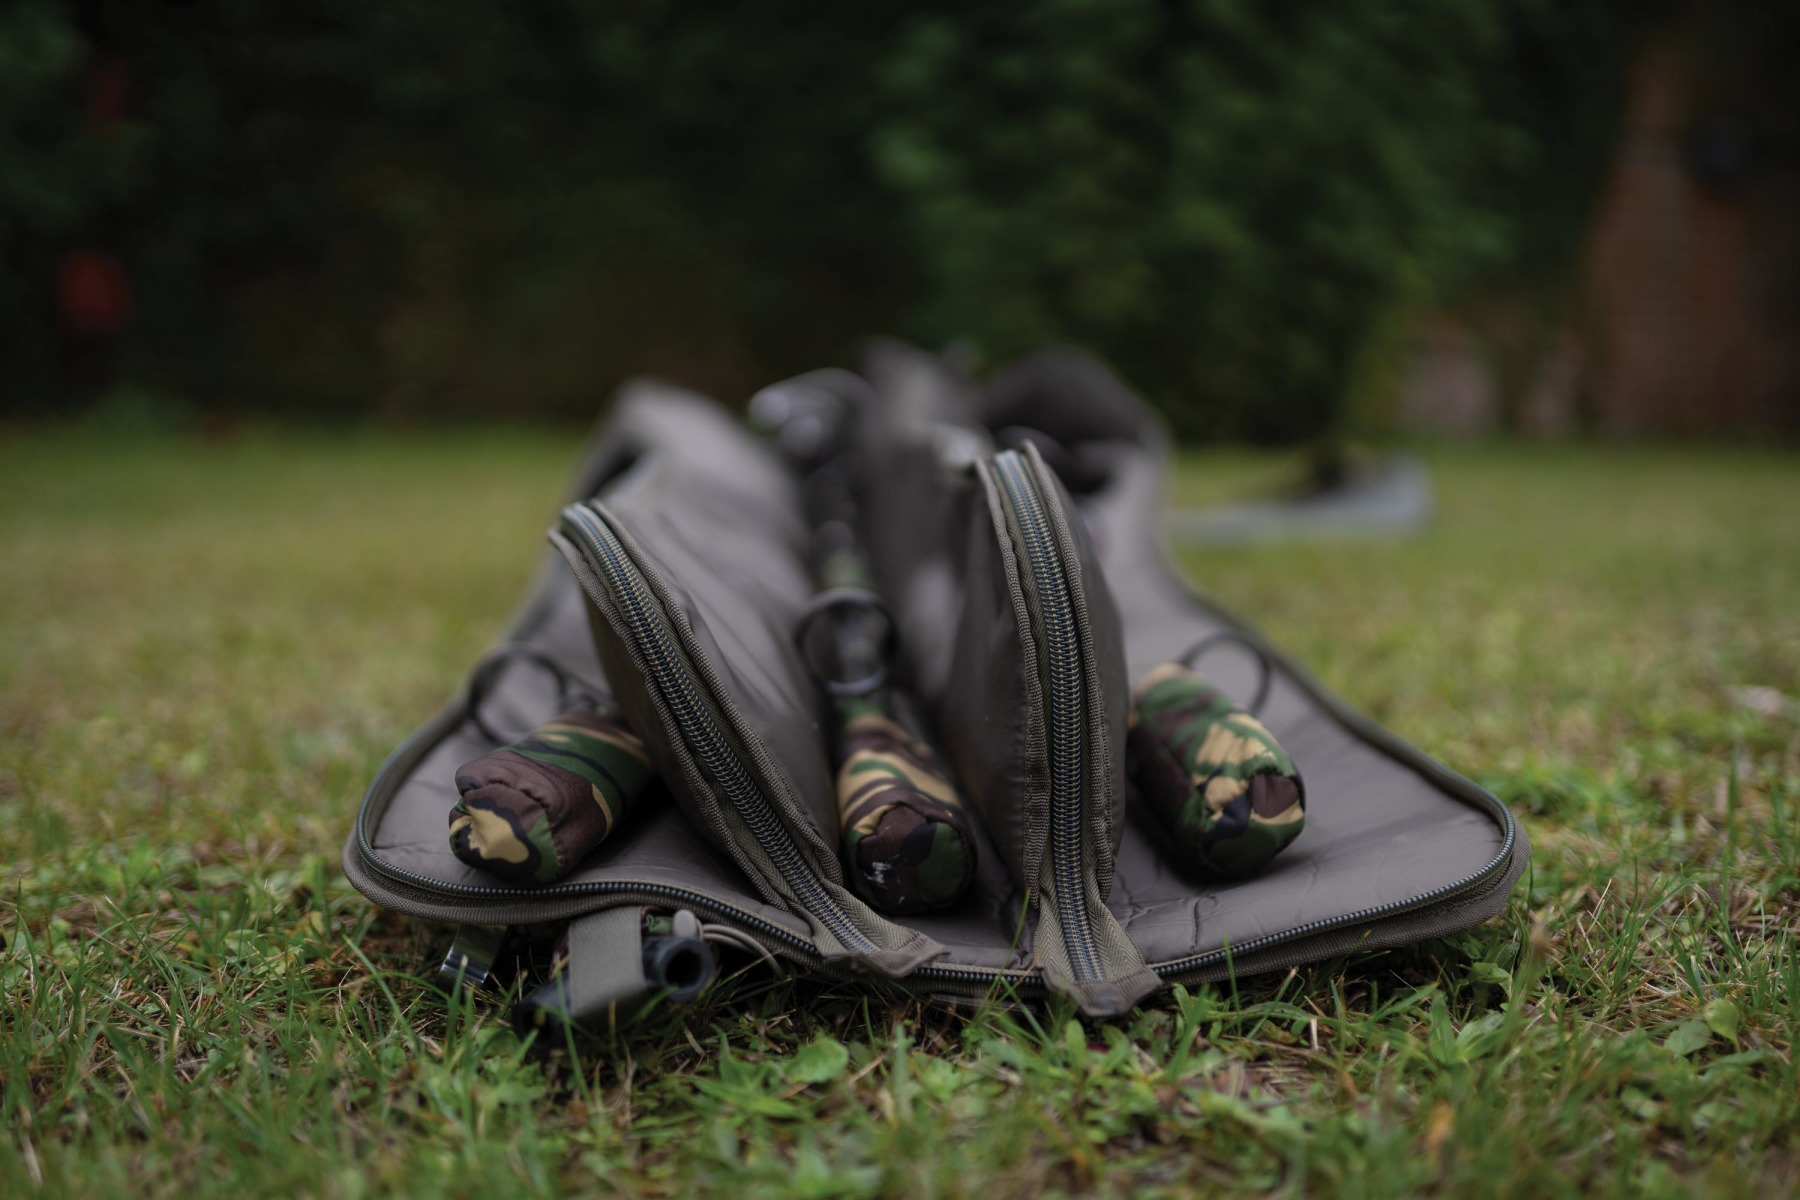 Two rods go inside padded, zipped compartments, and the other three sit either side of them